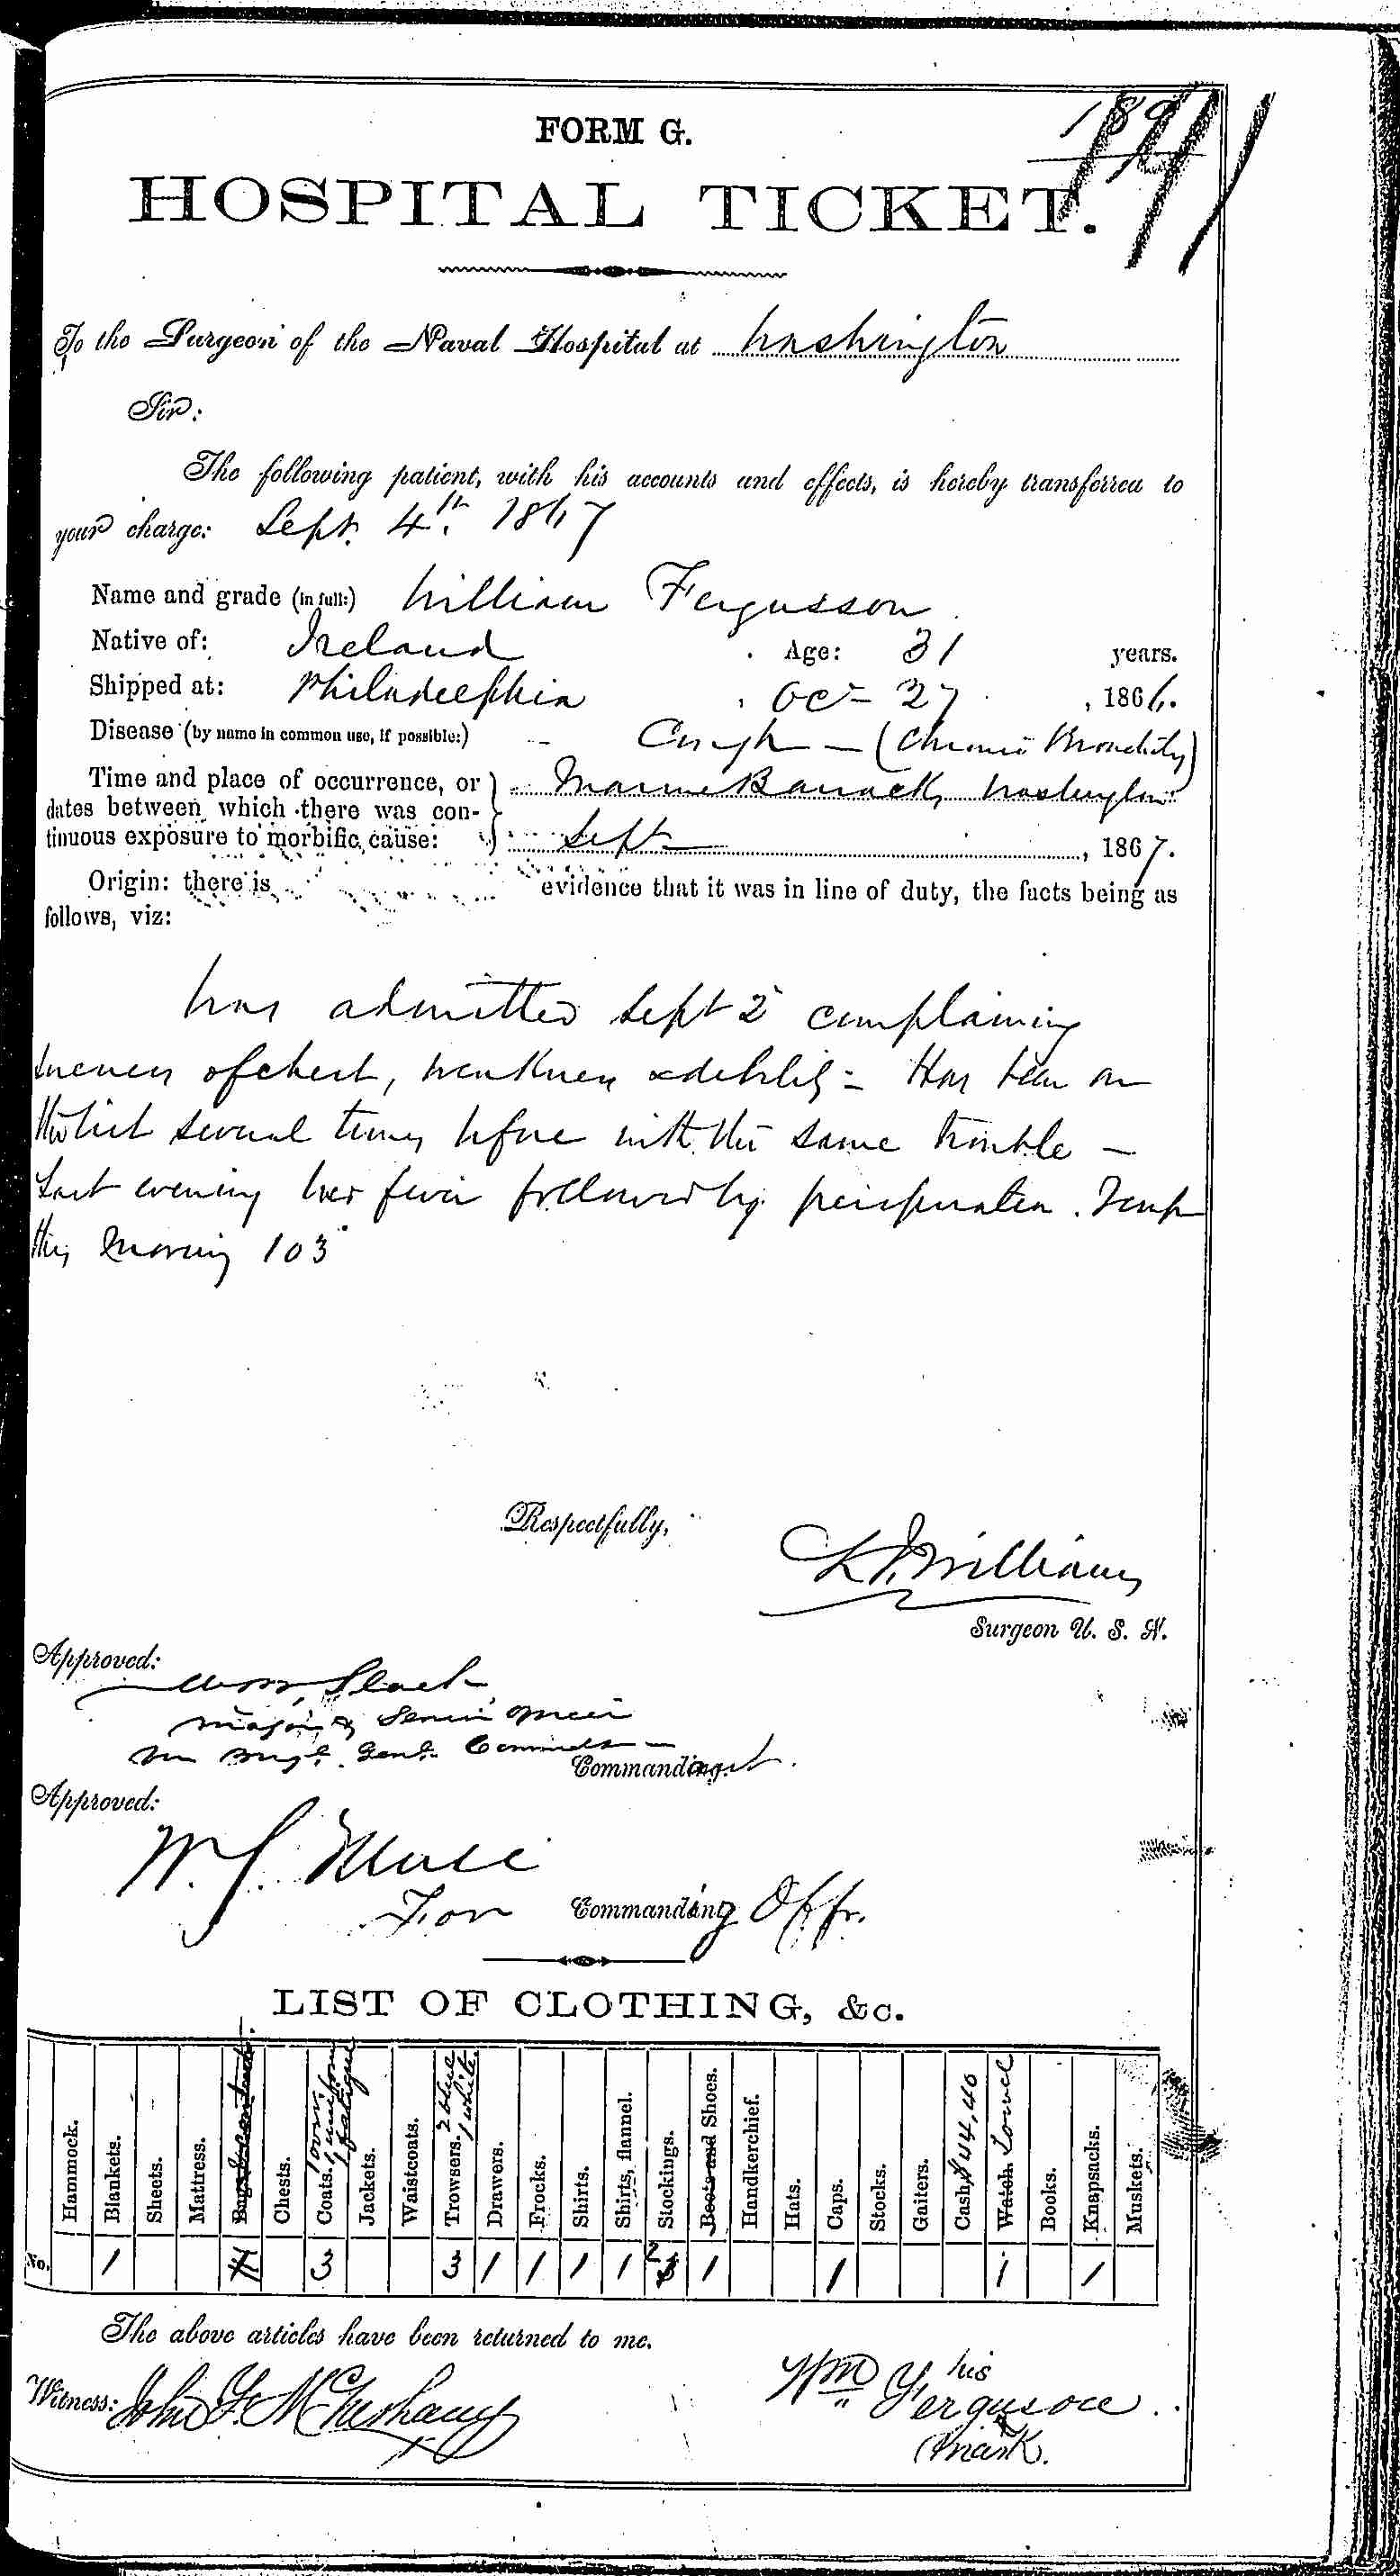 Entry for William Ferguson (page 1 of 2) in the log Hospital Tickets and Case Papers - Naval Hospital - Washington, D.C. - 1866-68